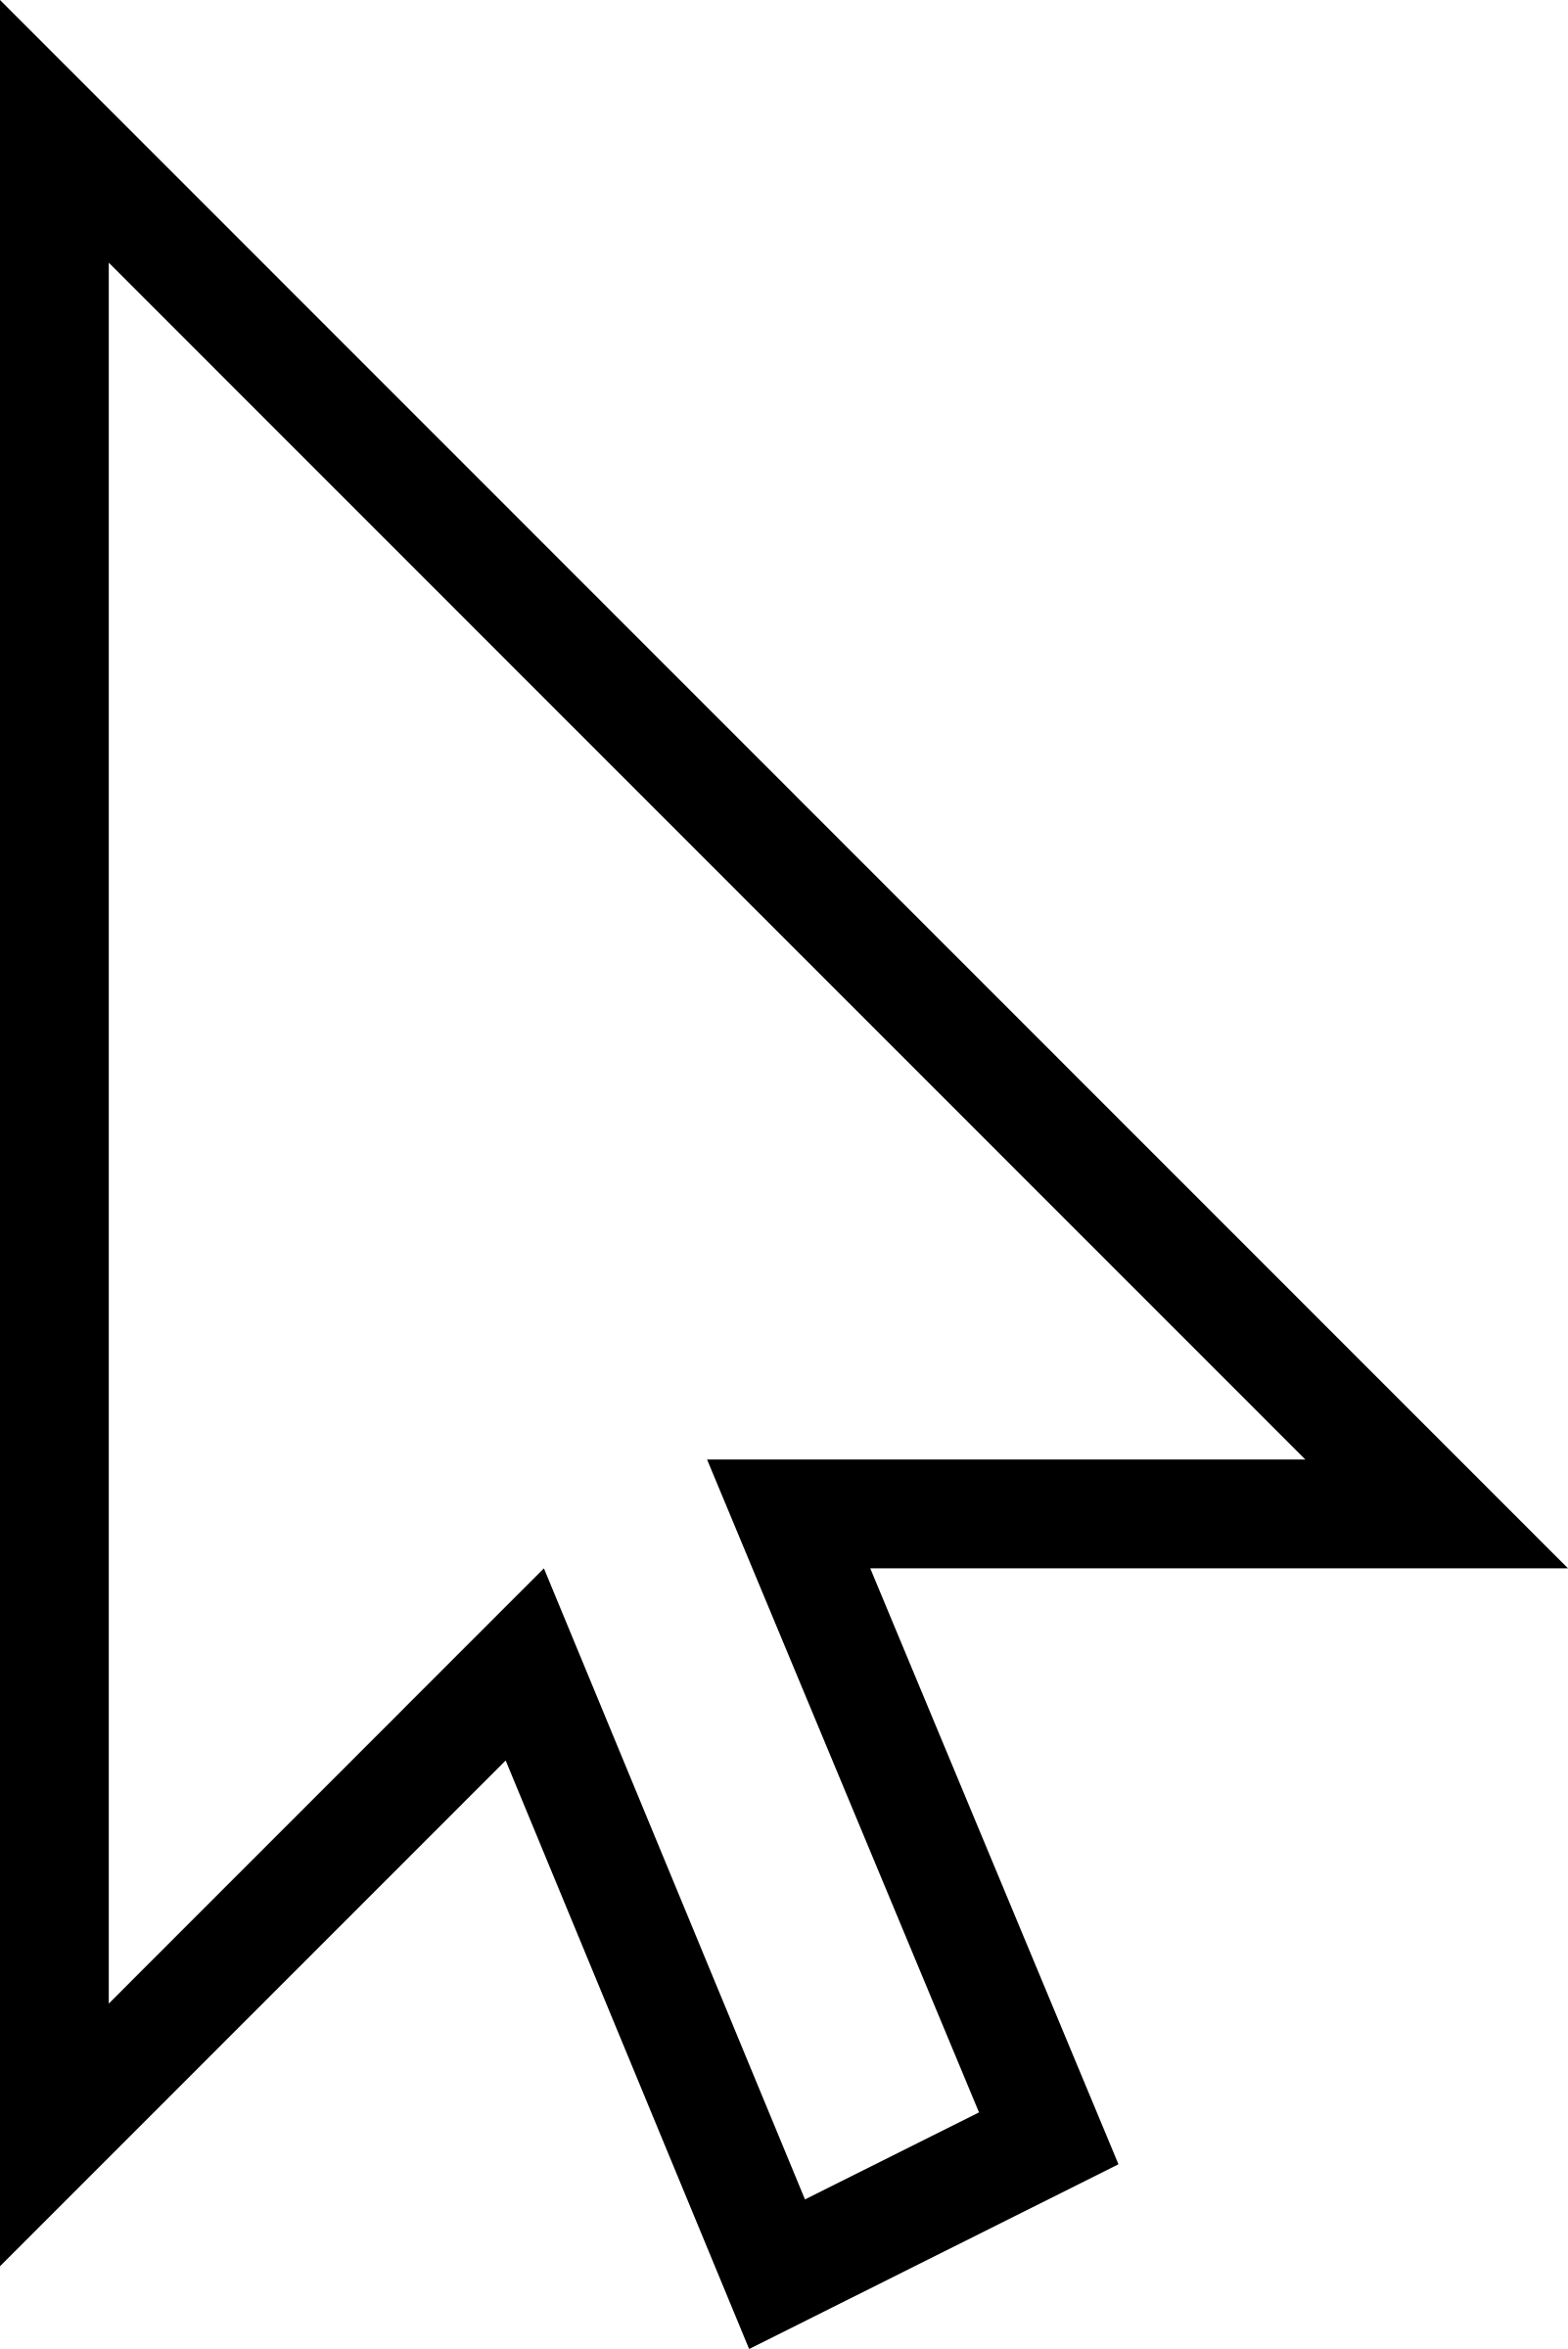 White Mouse Cursor Arrow by qubodup